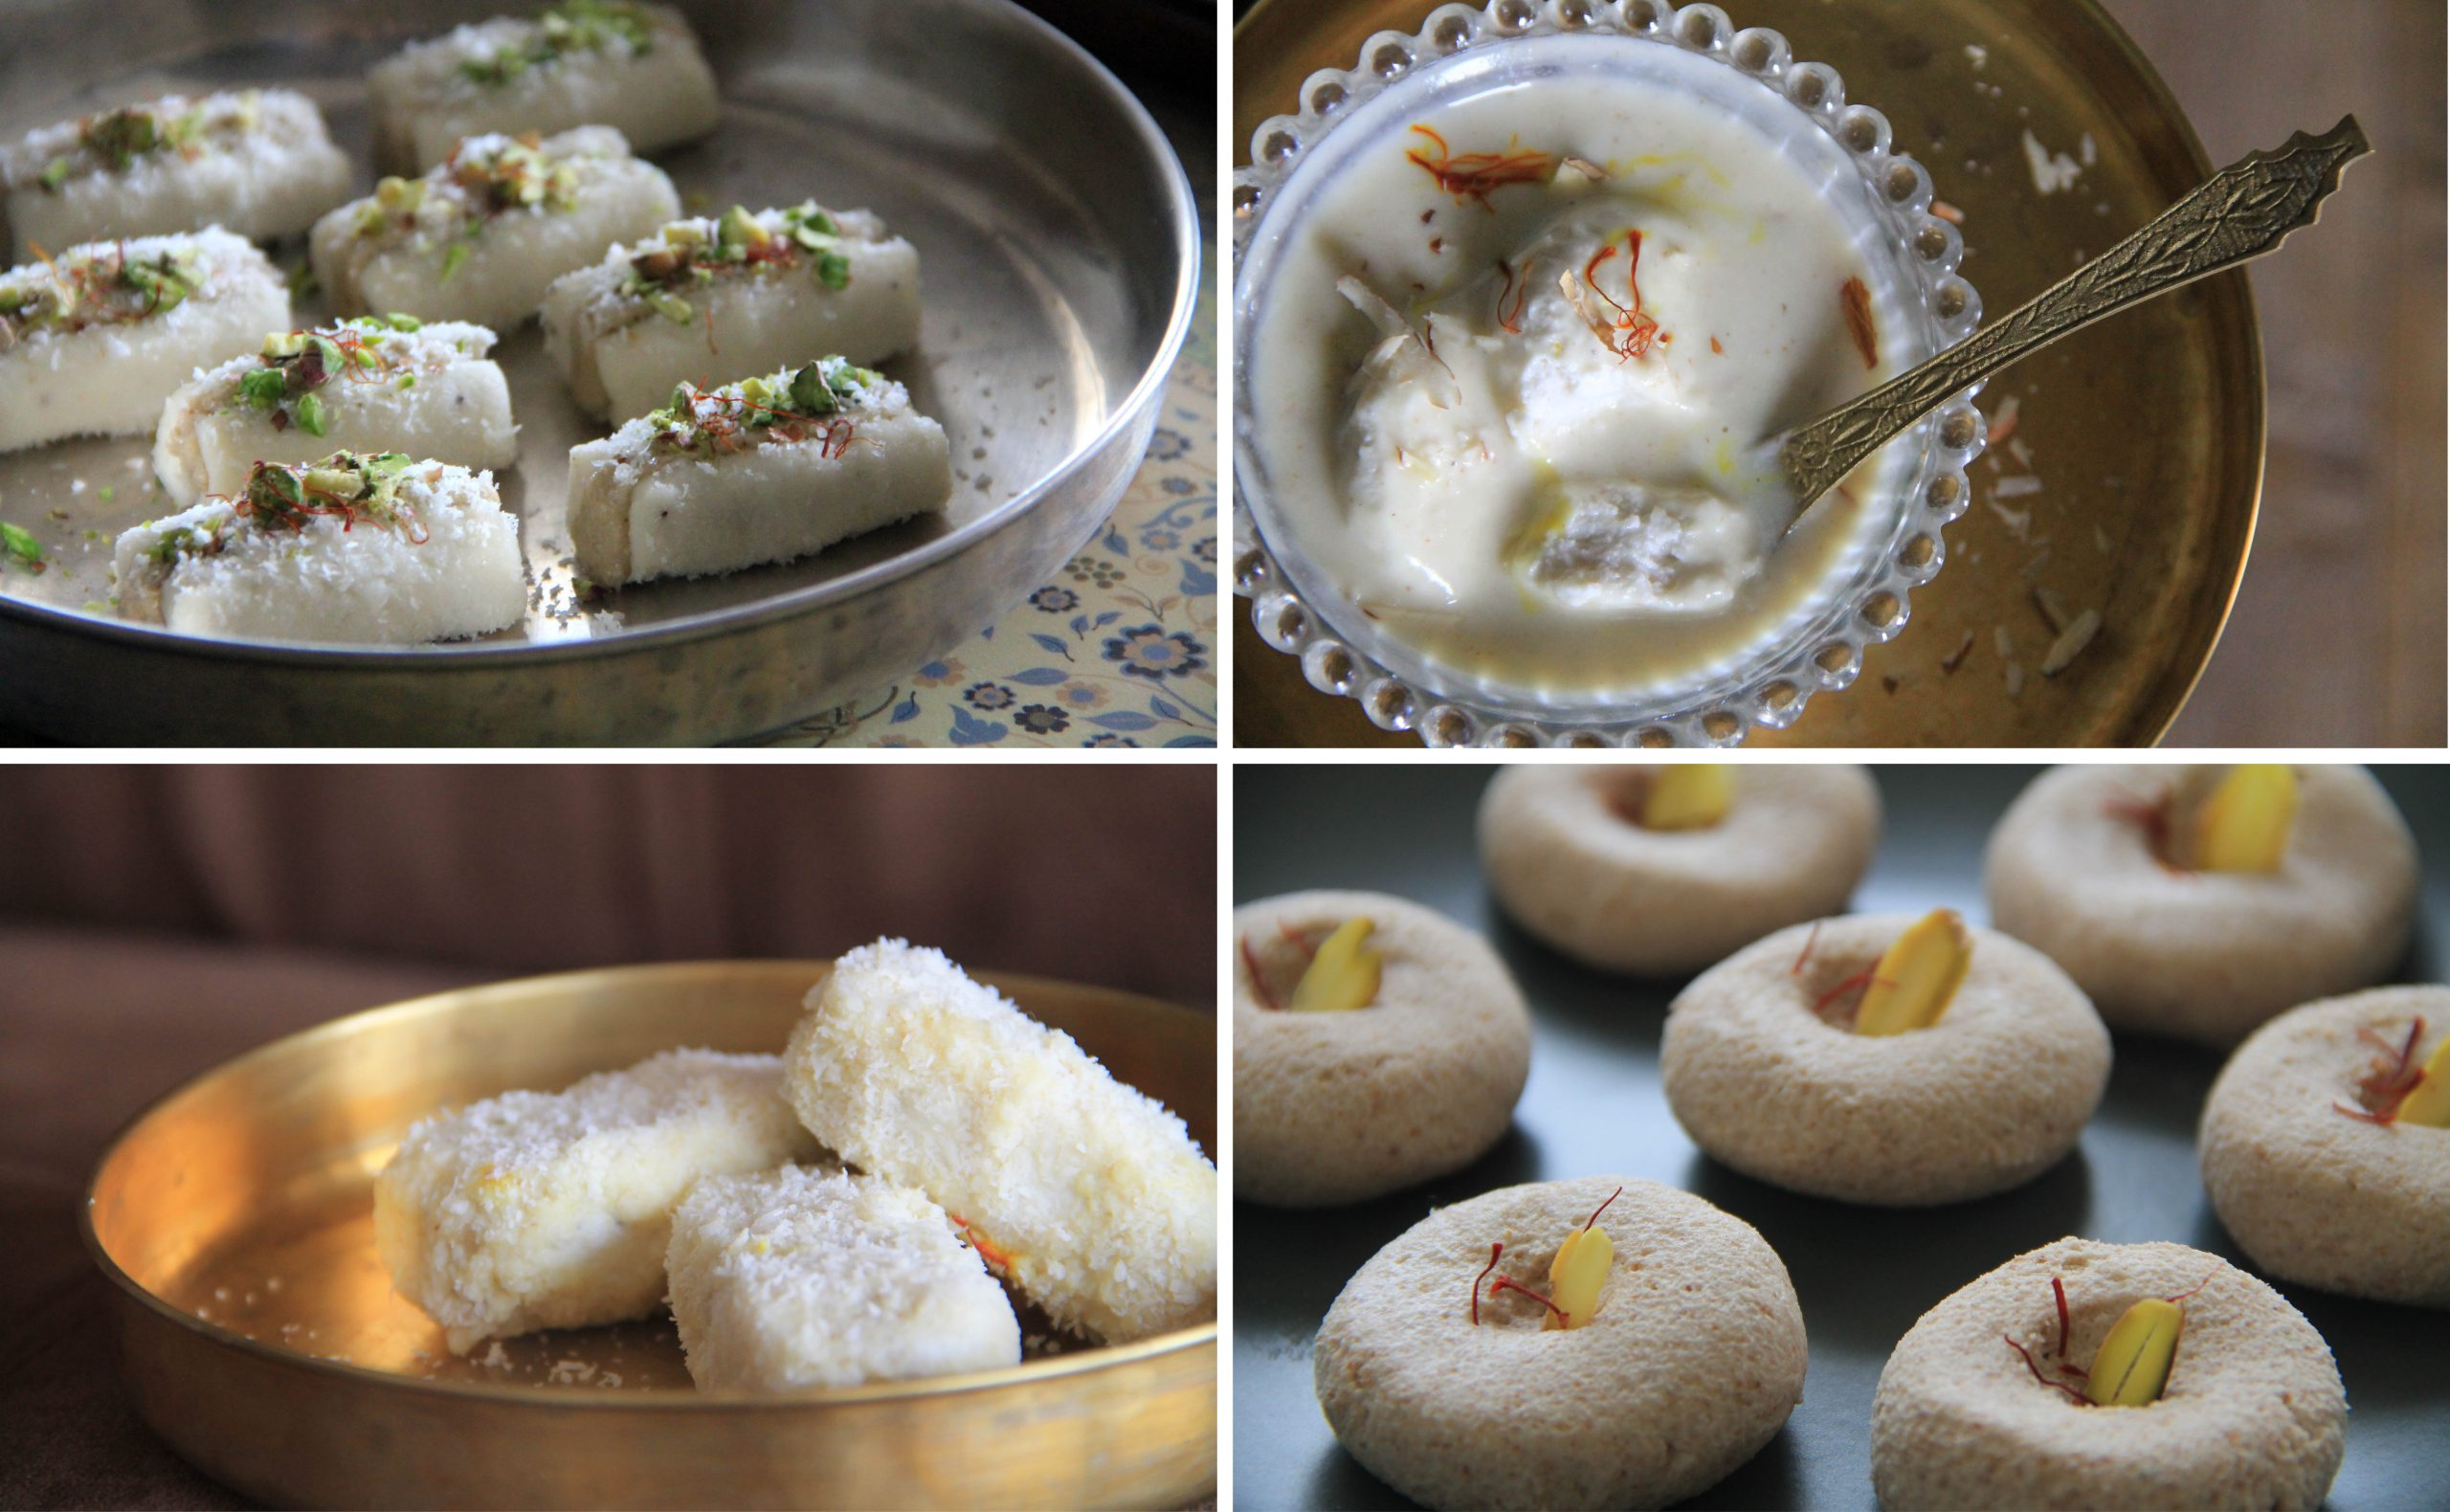 Vegan Indian Milk Sweets including dairy-free and soy-free rasmalai, sandesh, and chumchum.